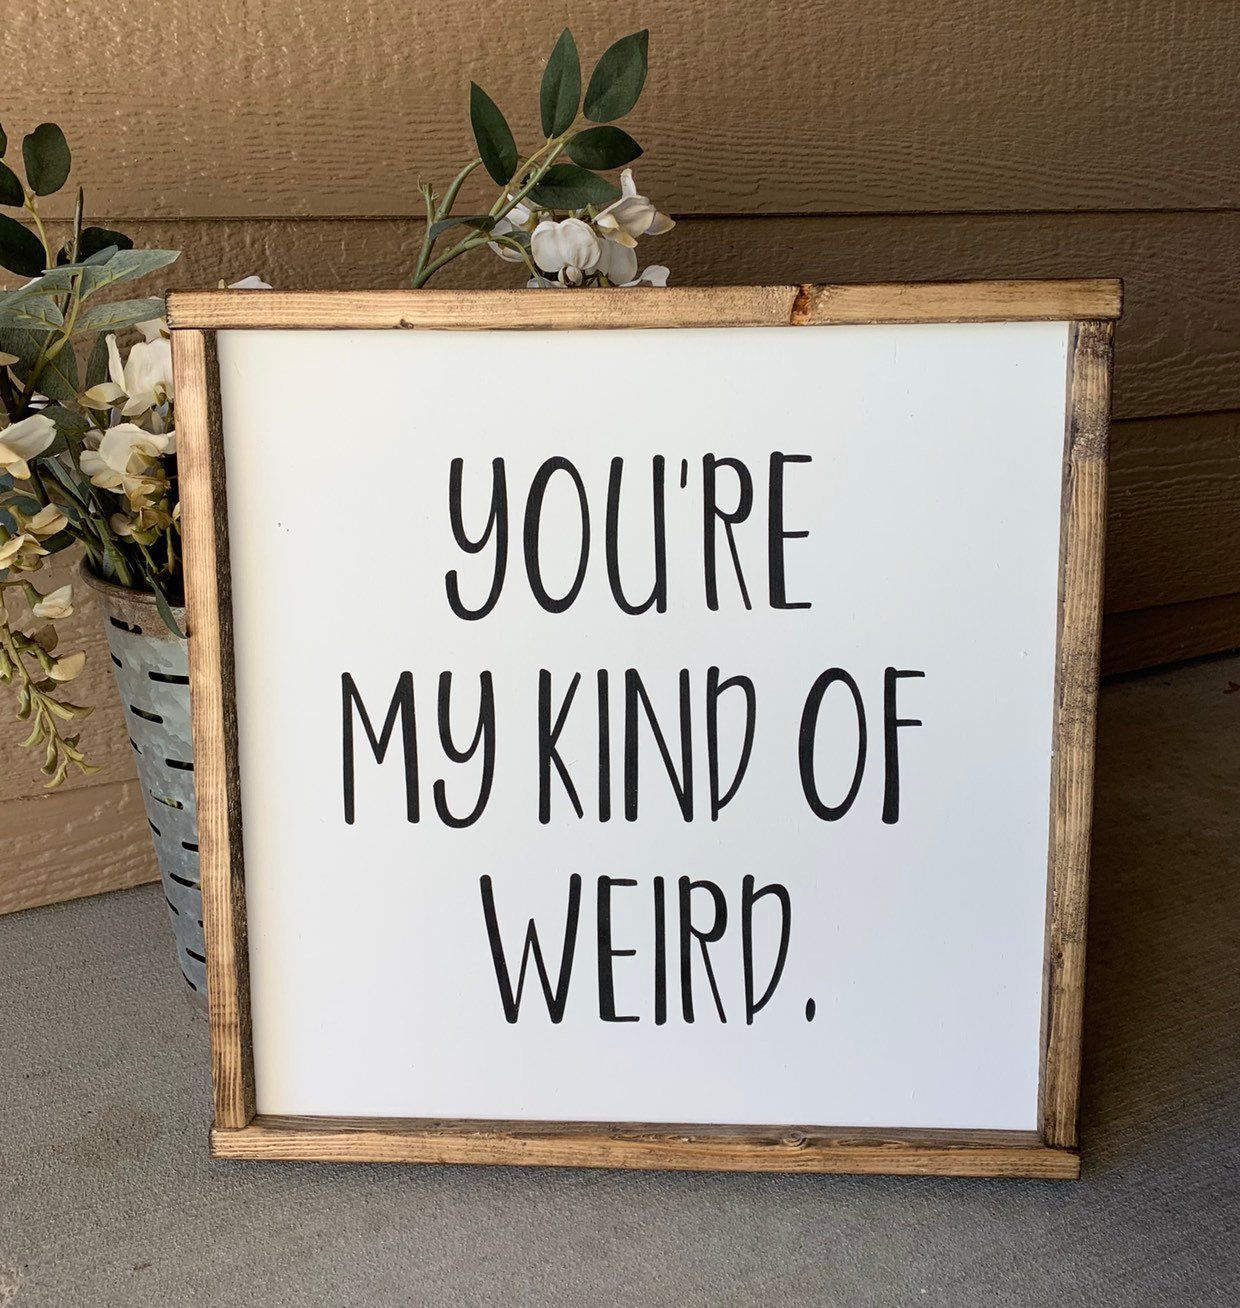 signs with quotes | farmhouse decor | home decor | farmhouse signs | wedding signs | youre my kind of weird | Wall Decor | Framed Wood Signs